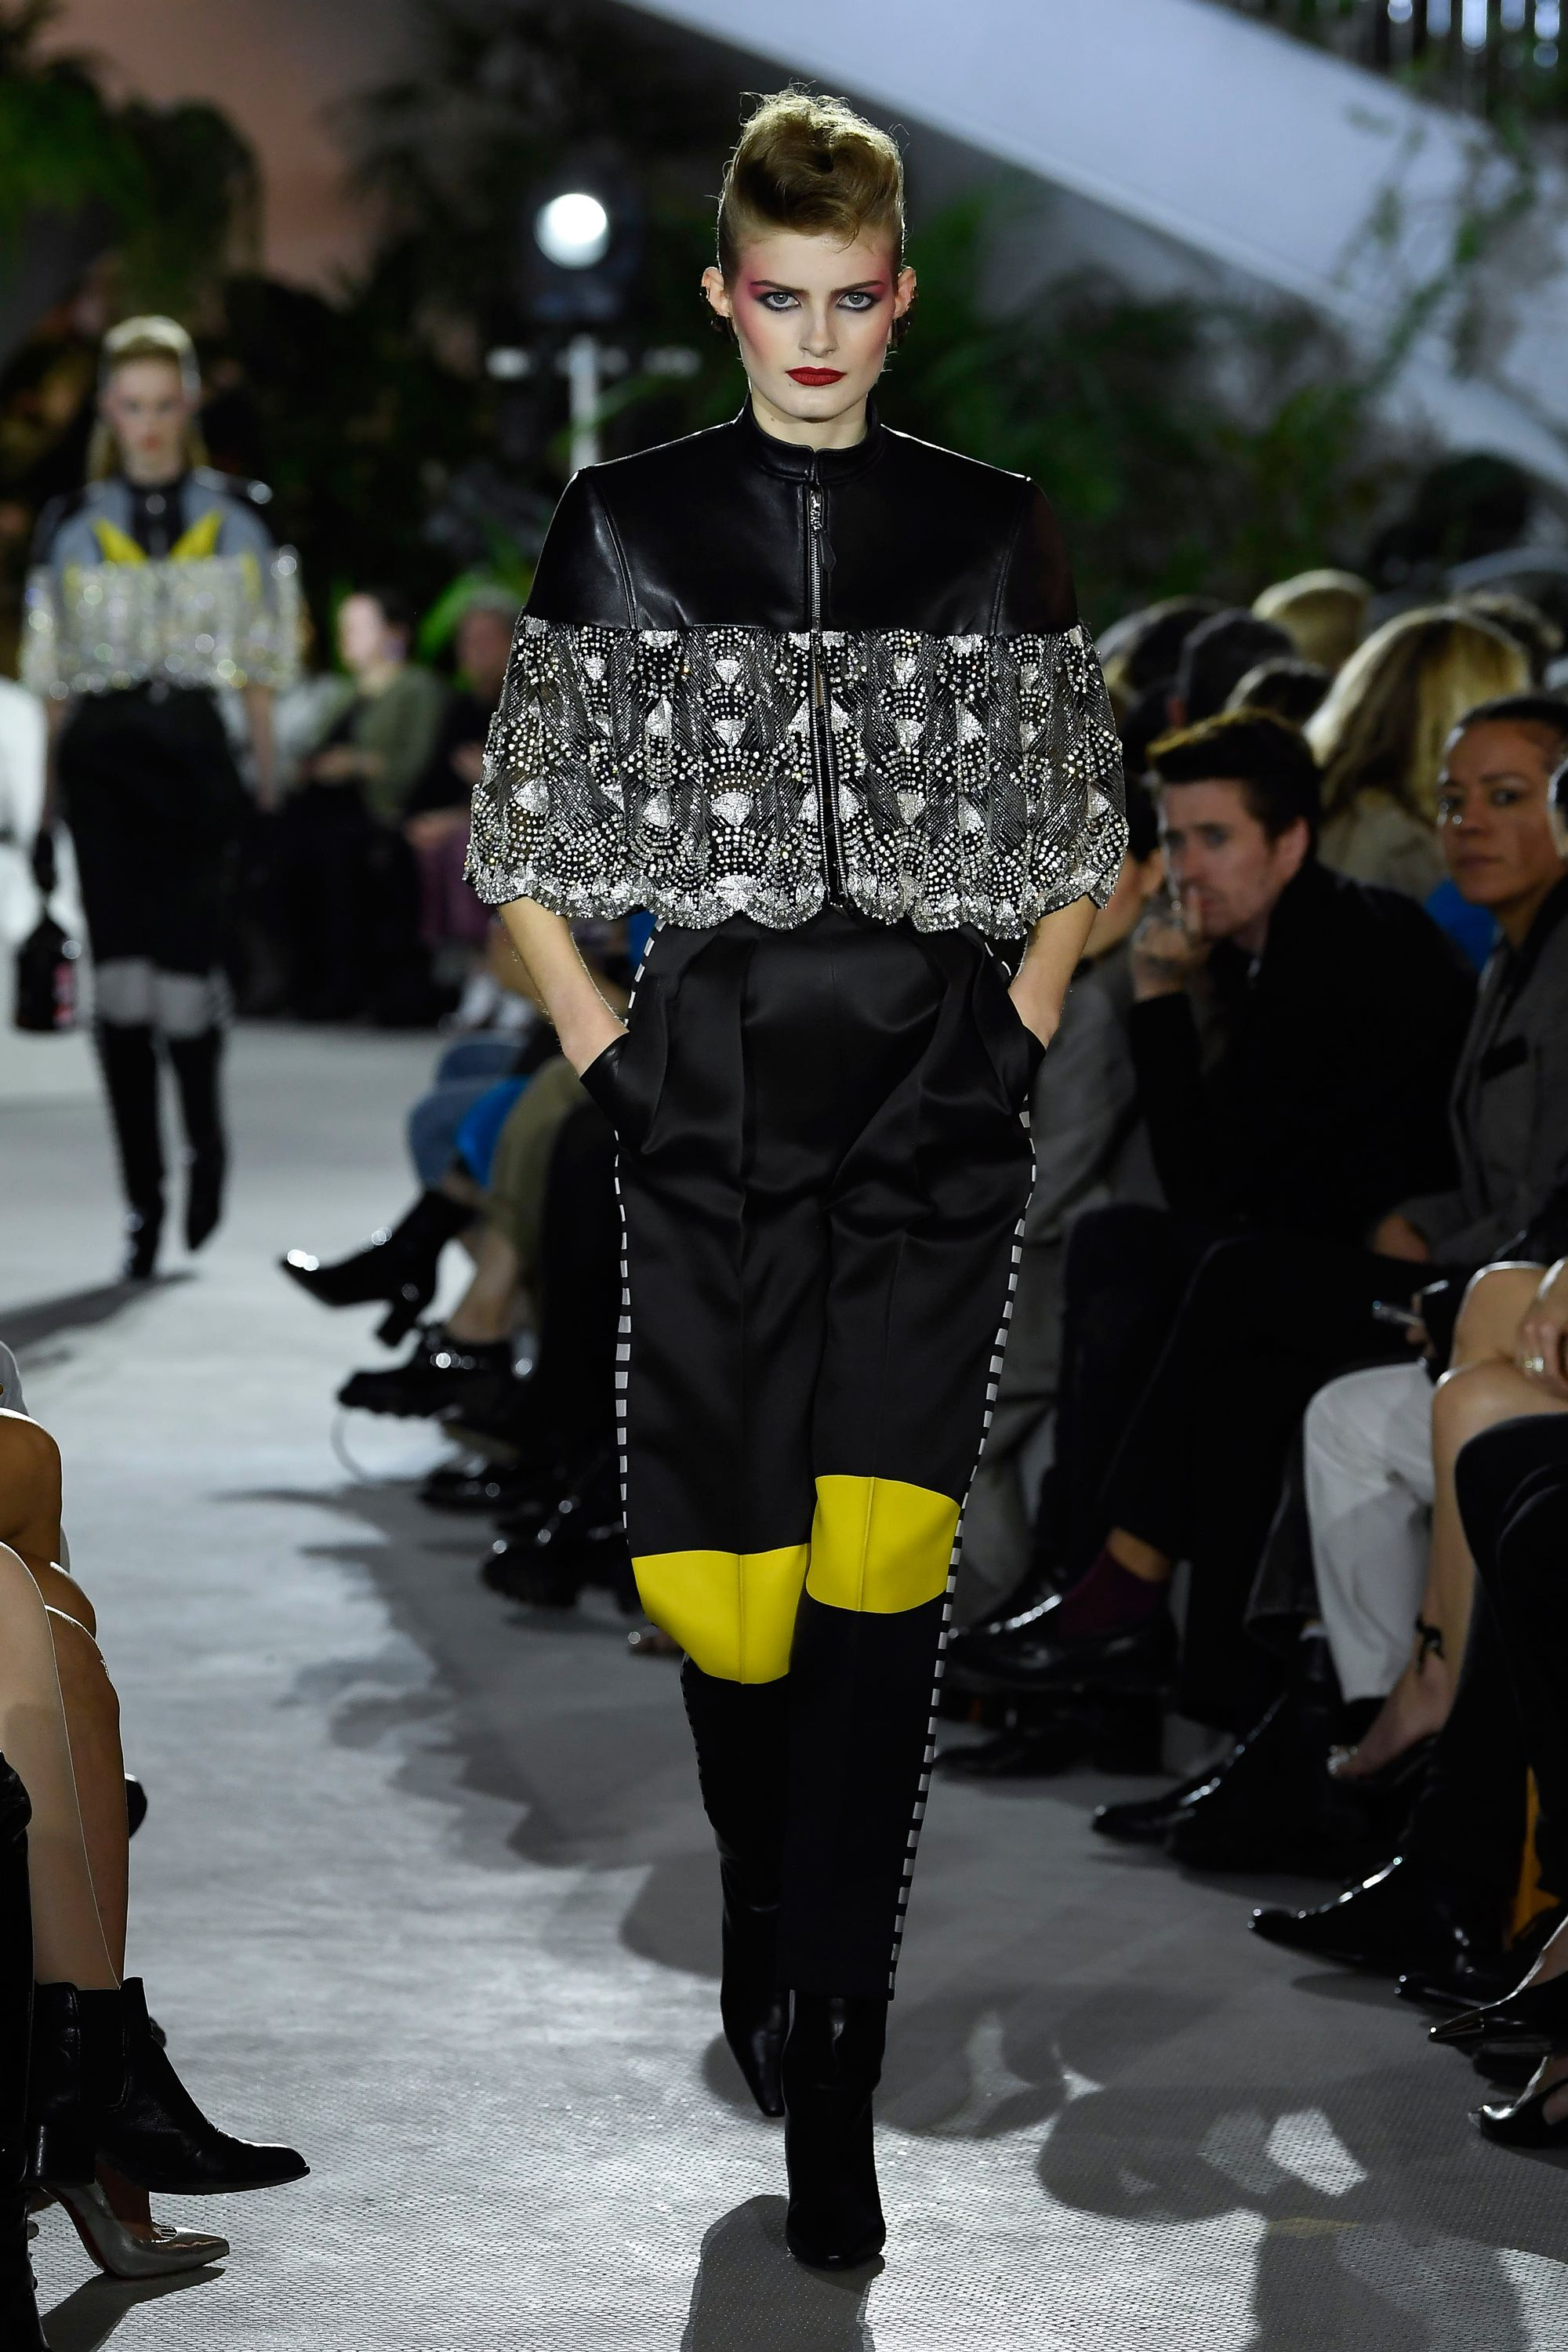 There were also several nods to comic book superheroes with a black and yellow color palette and sturdy combat boots.